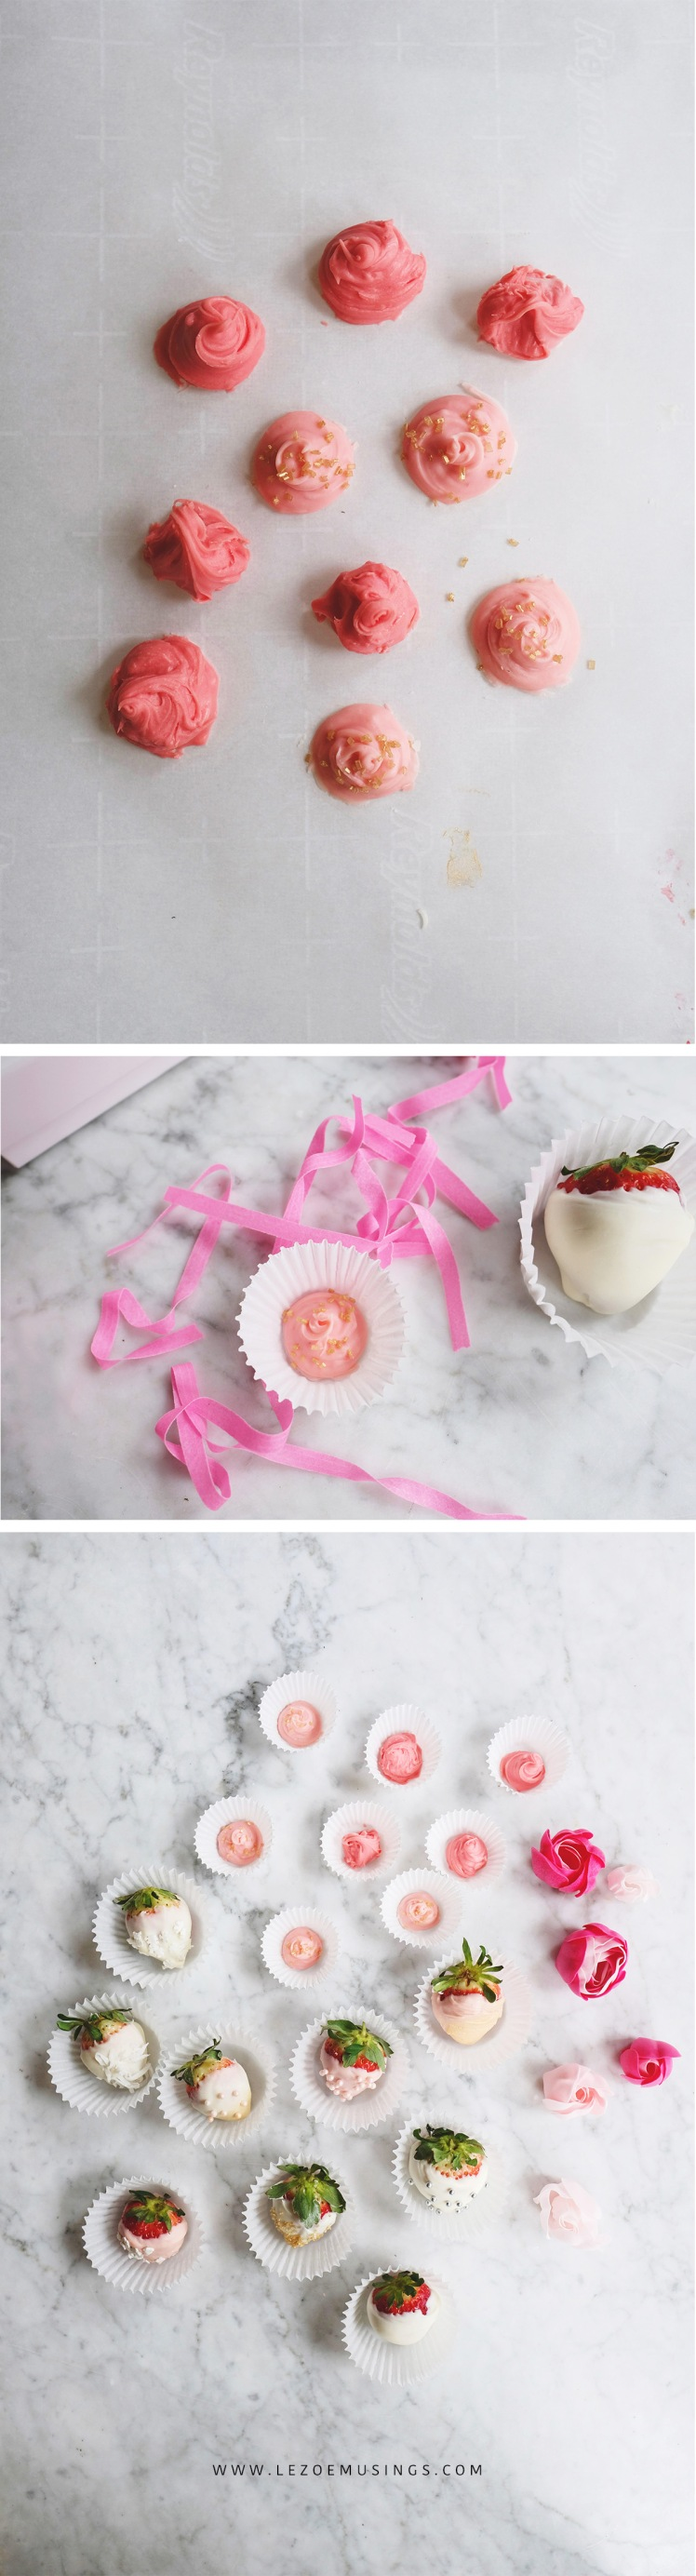 DIY_ValentinesDay_TreatBox_byLeZoeMusings